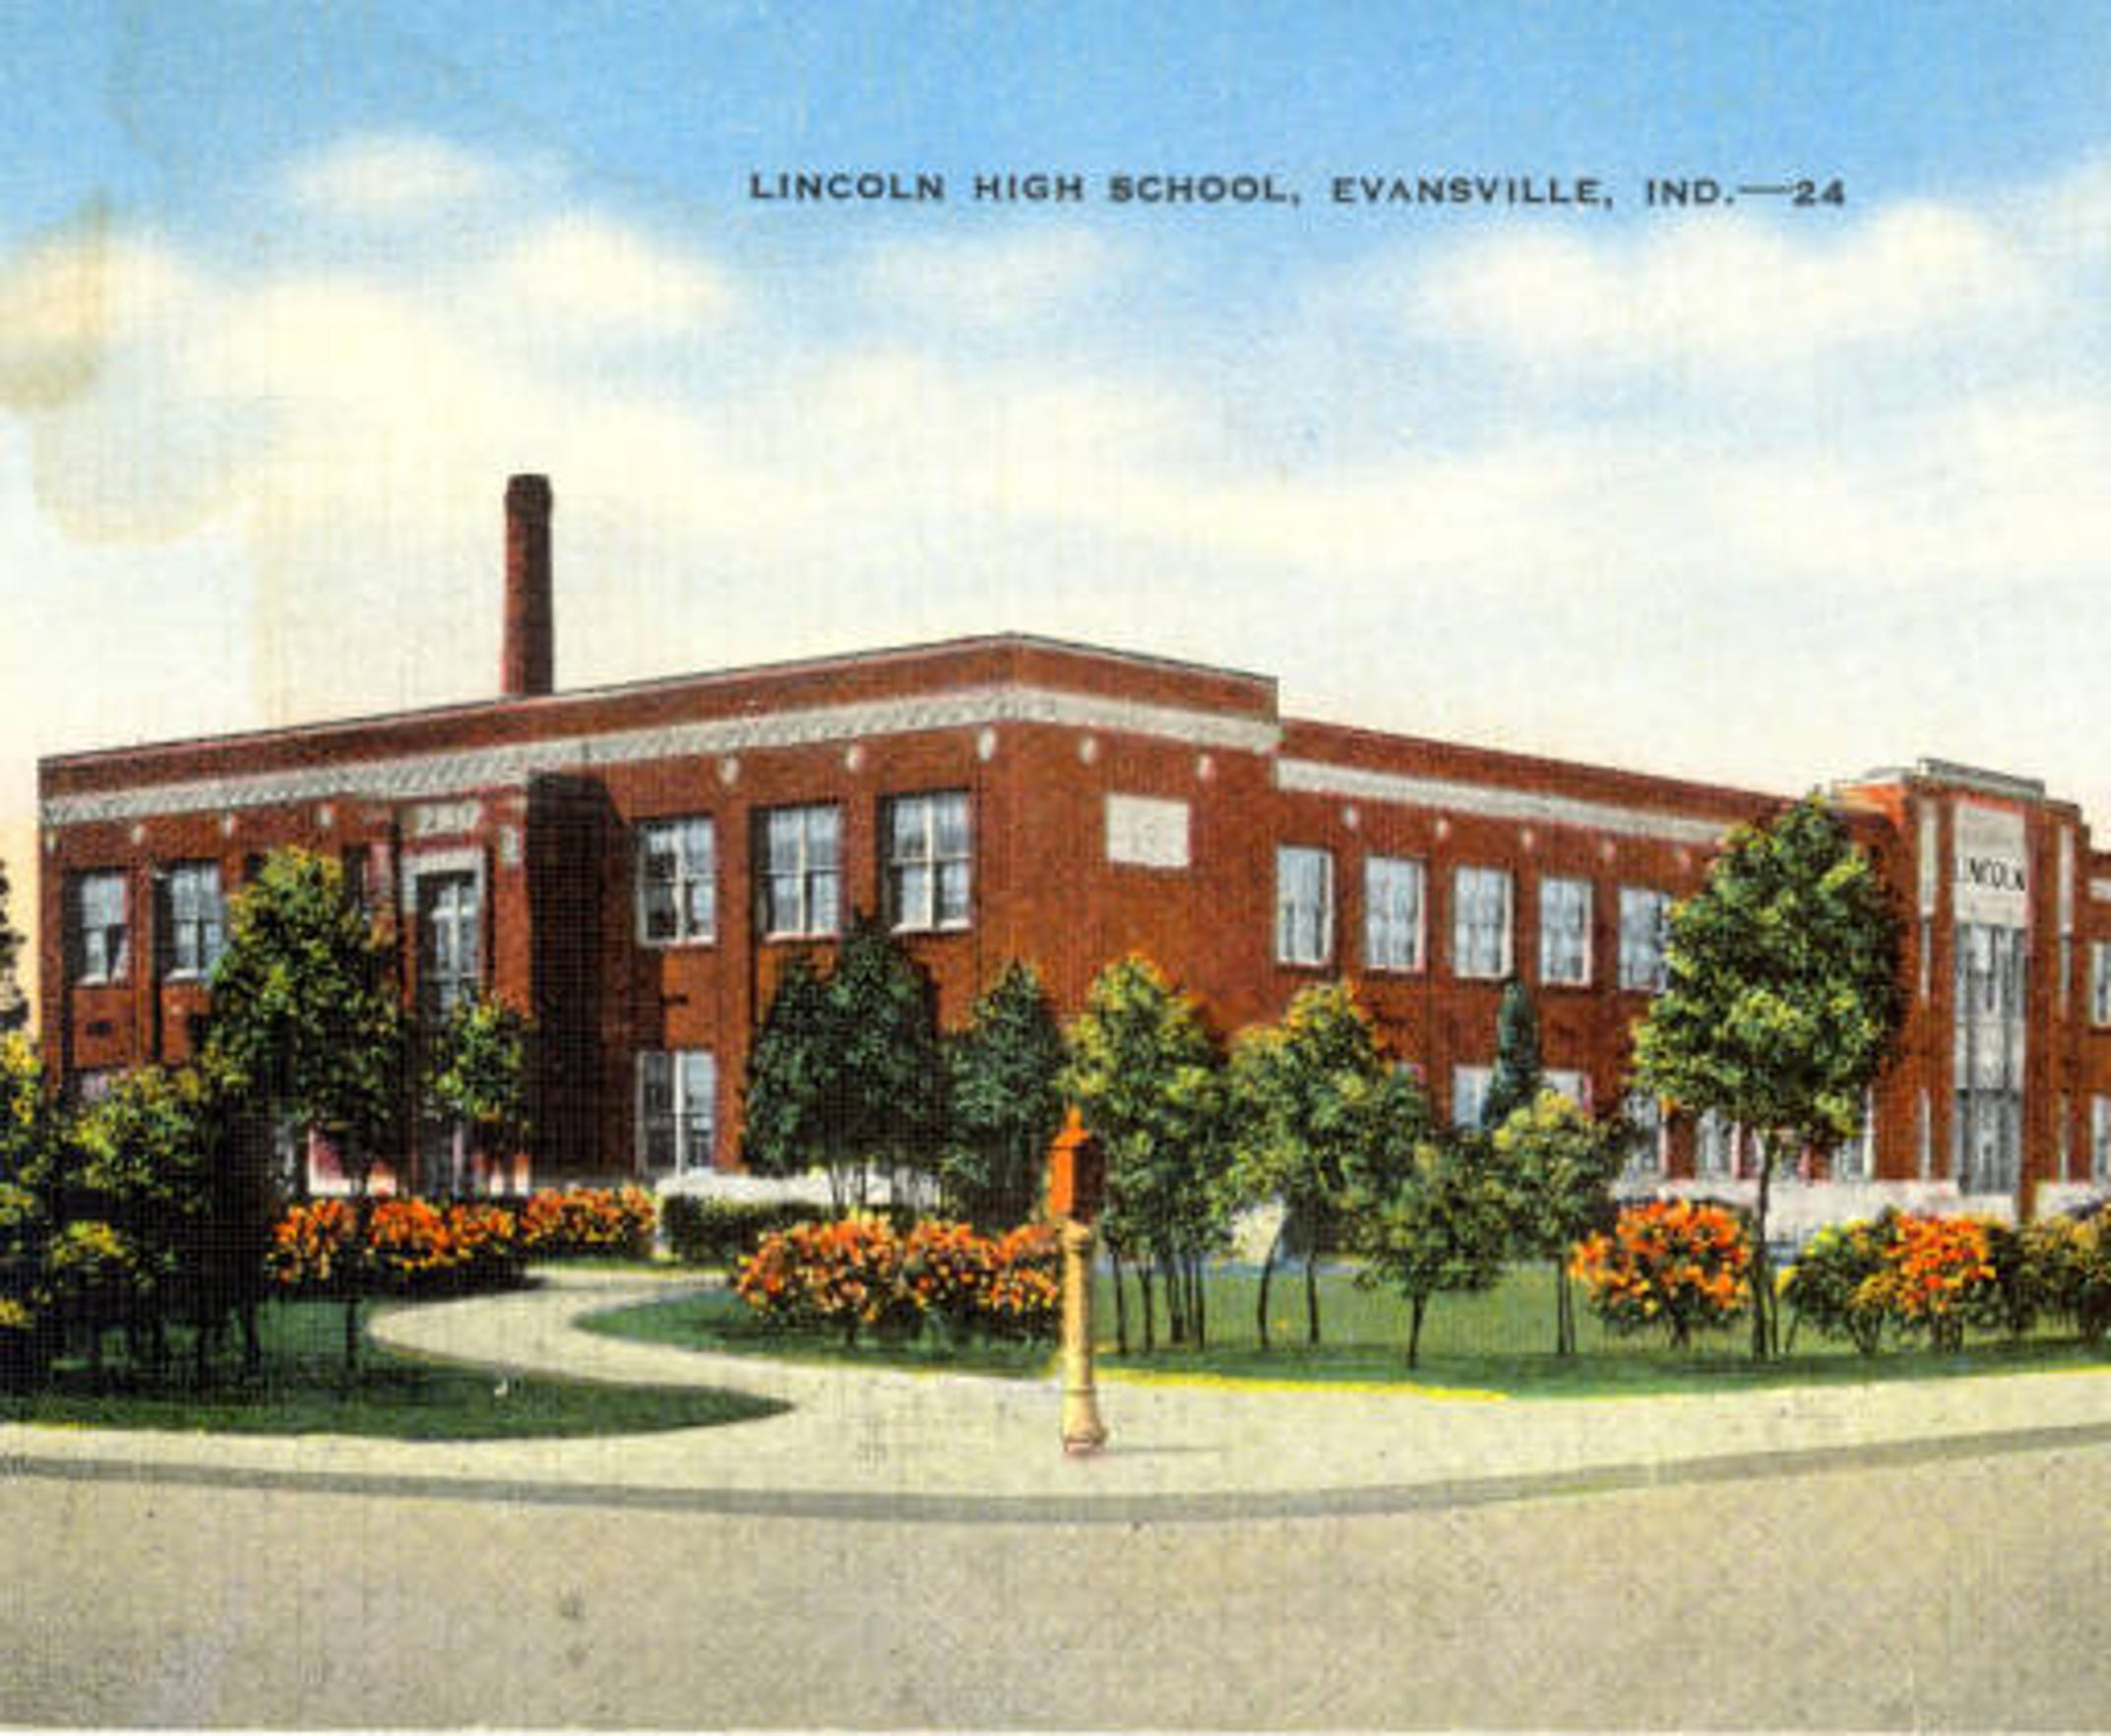 Lincoln was built in 1928 and closed as a high school in 1962. It now functions as Lincoln Elementary school.